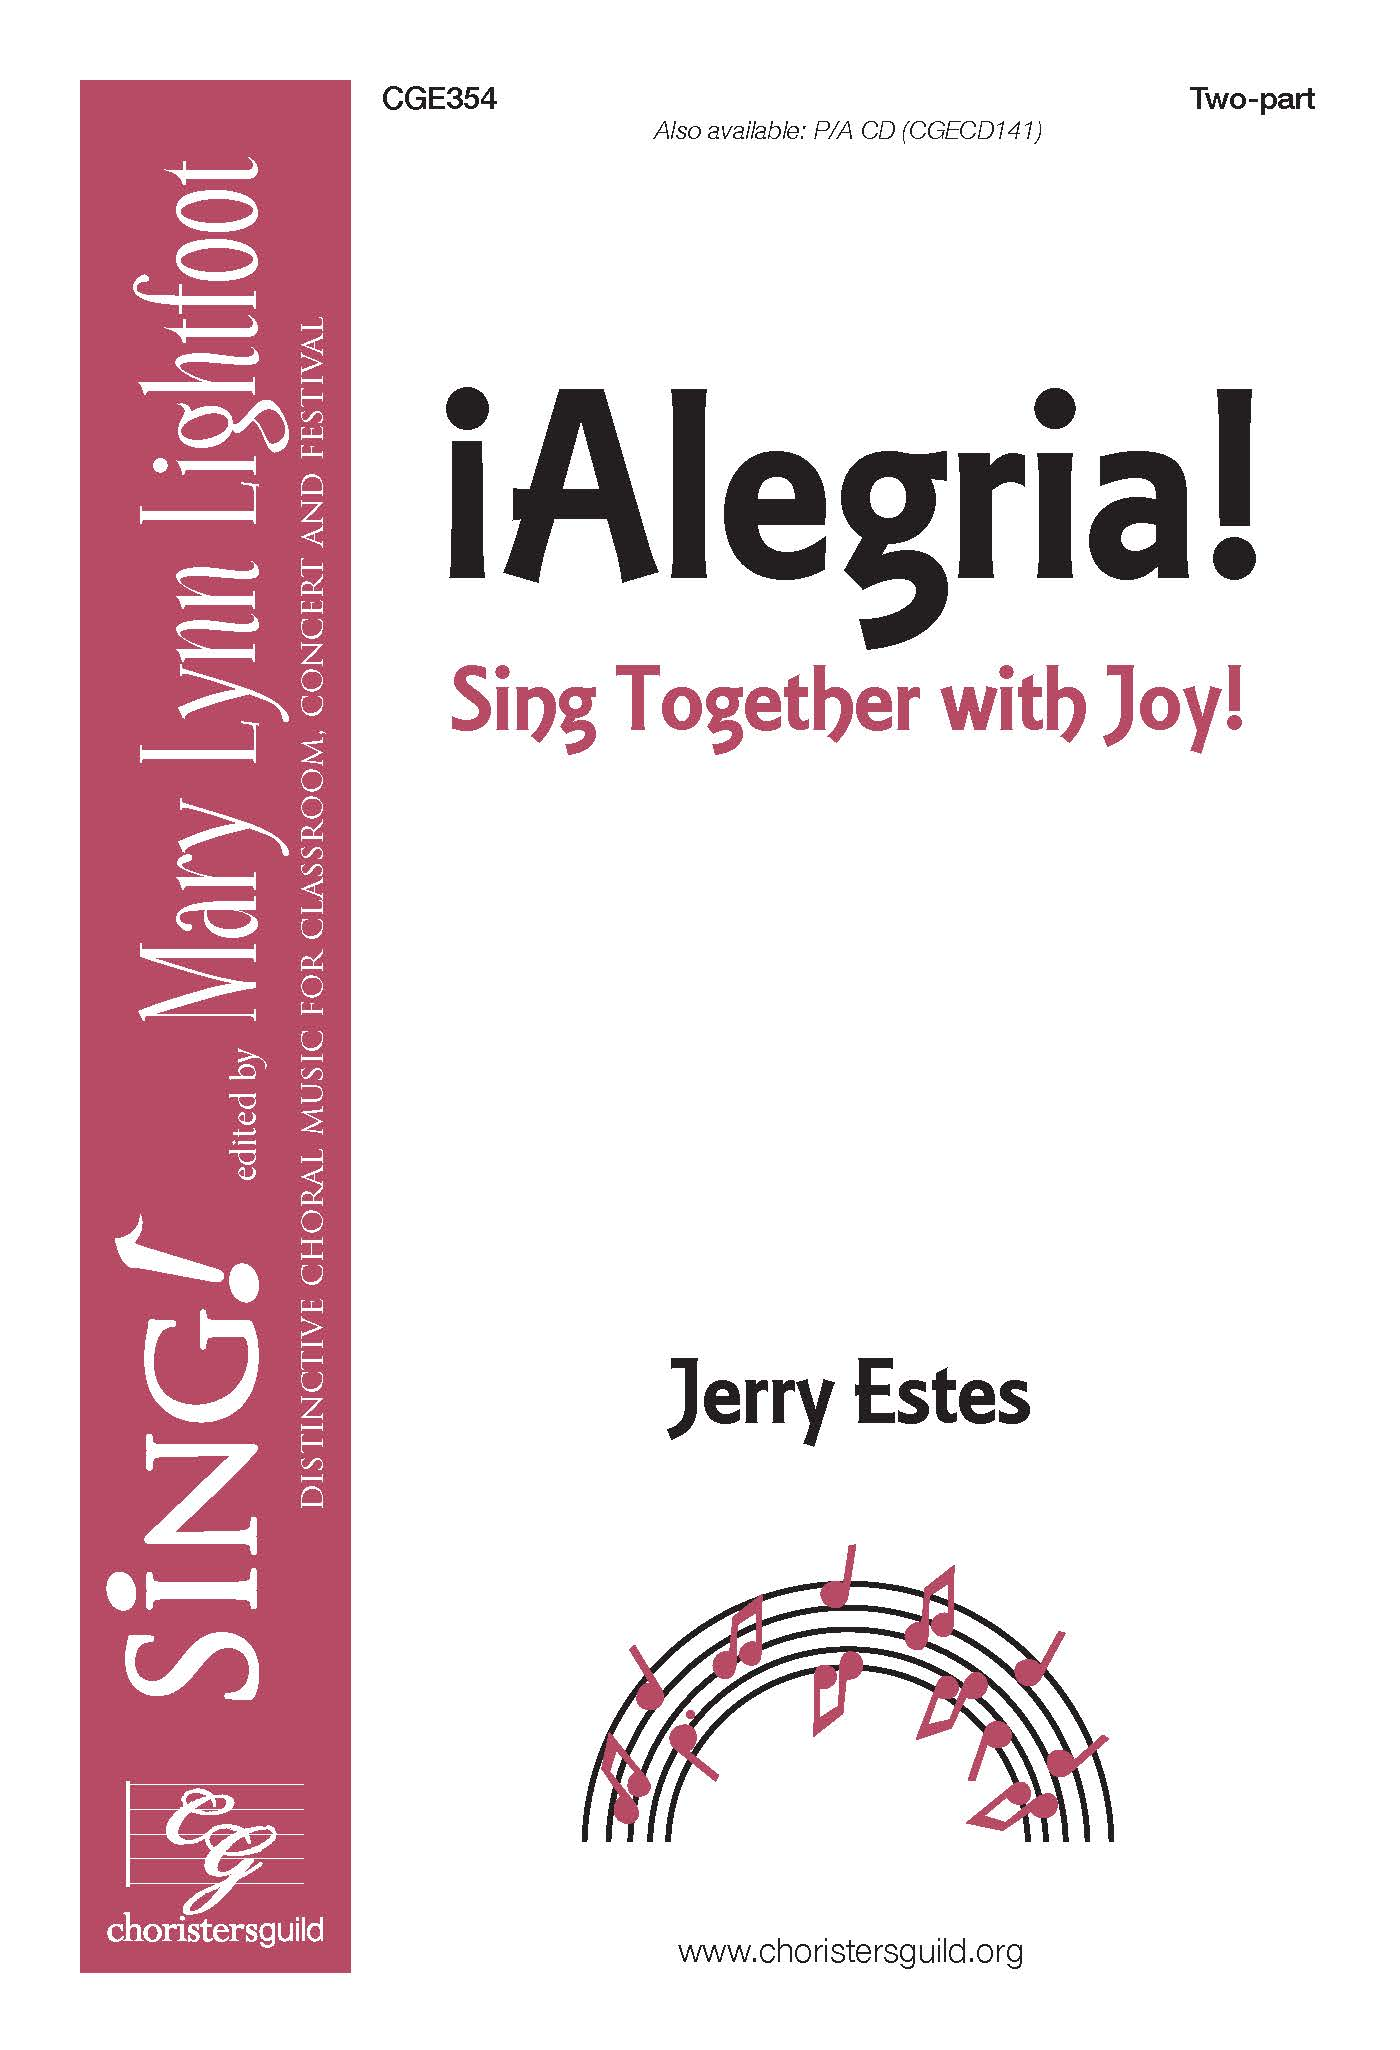 !Alegria! (Sing Together with Joy) Two-part